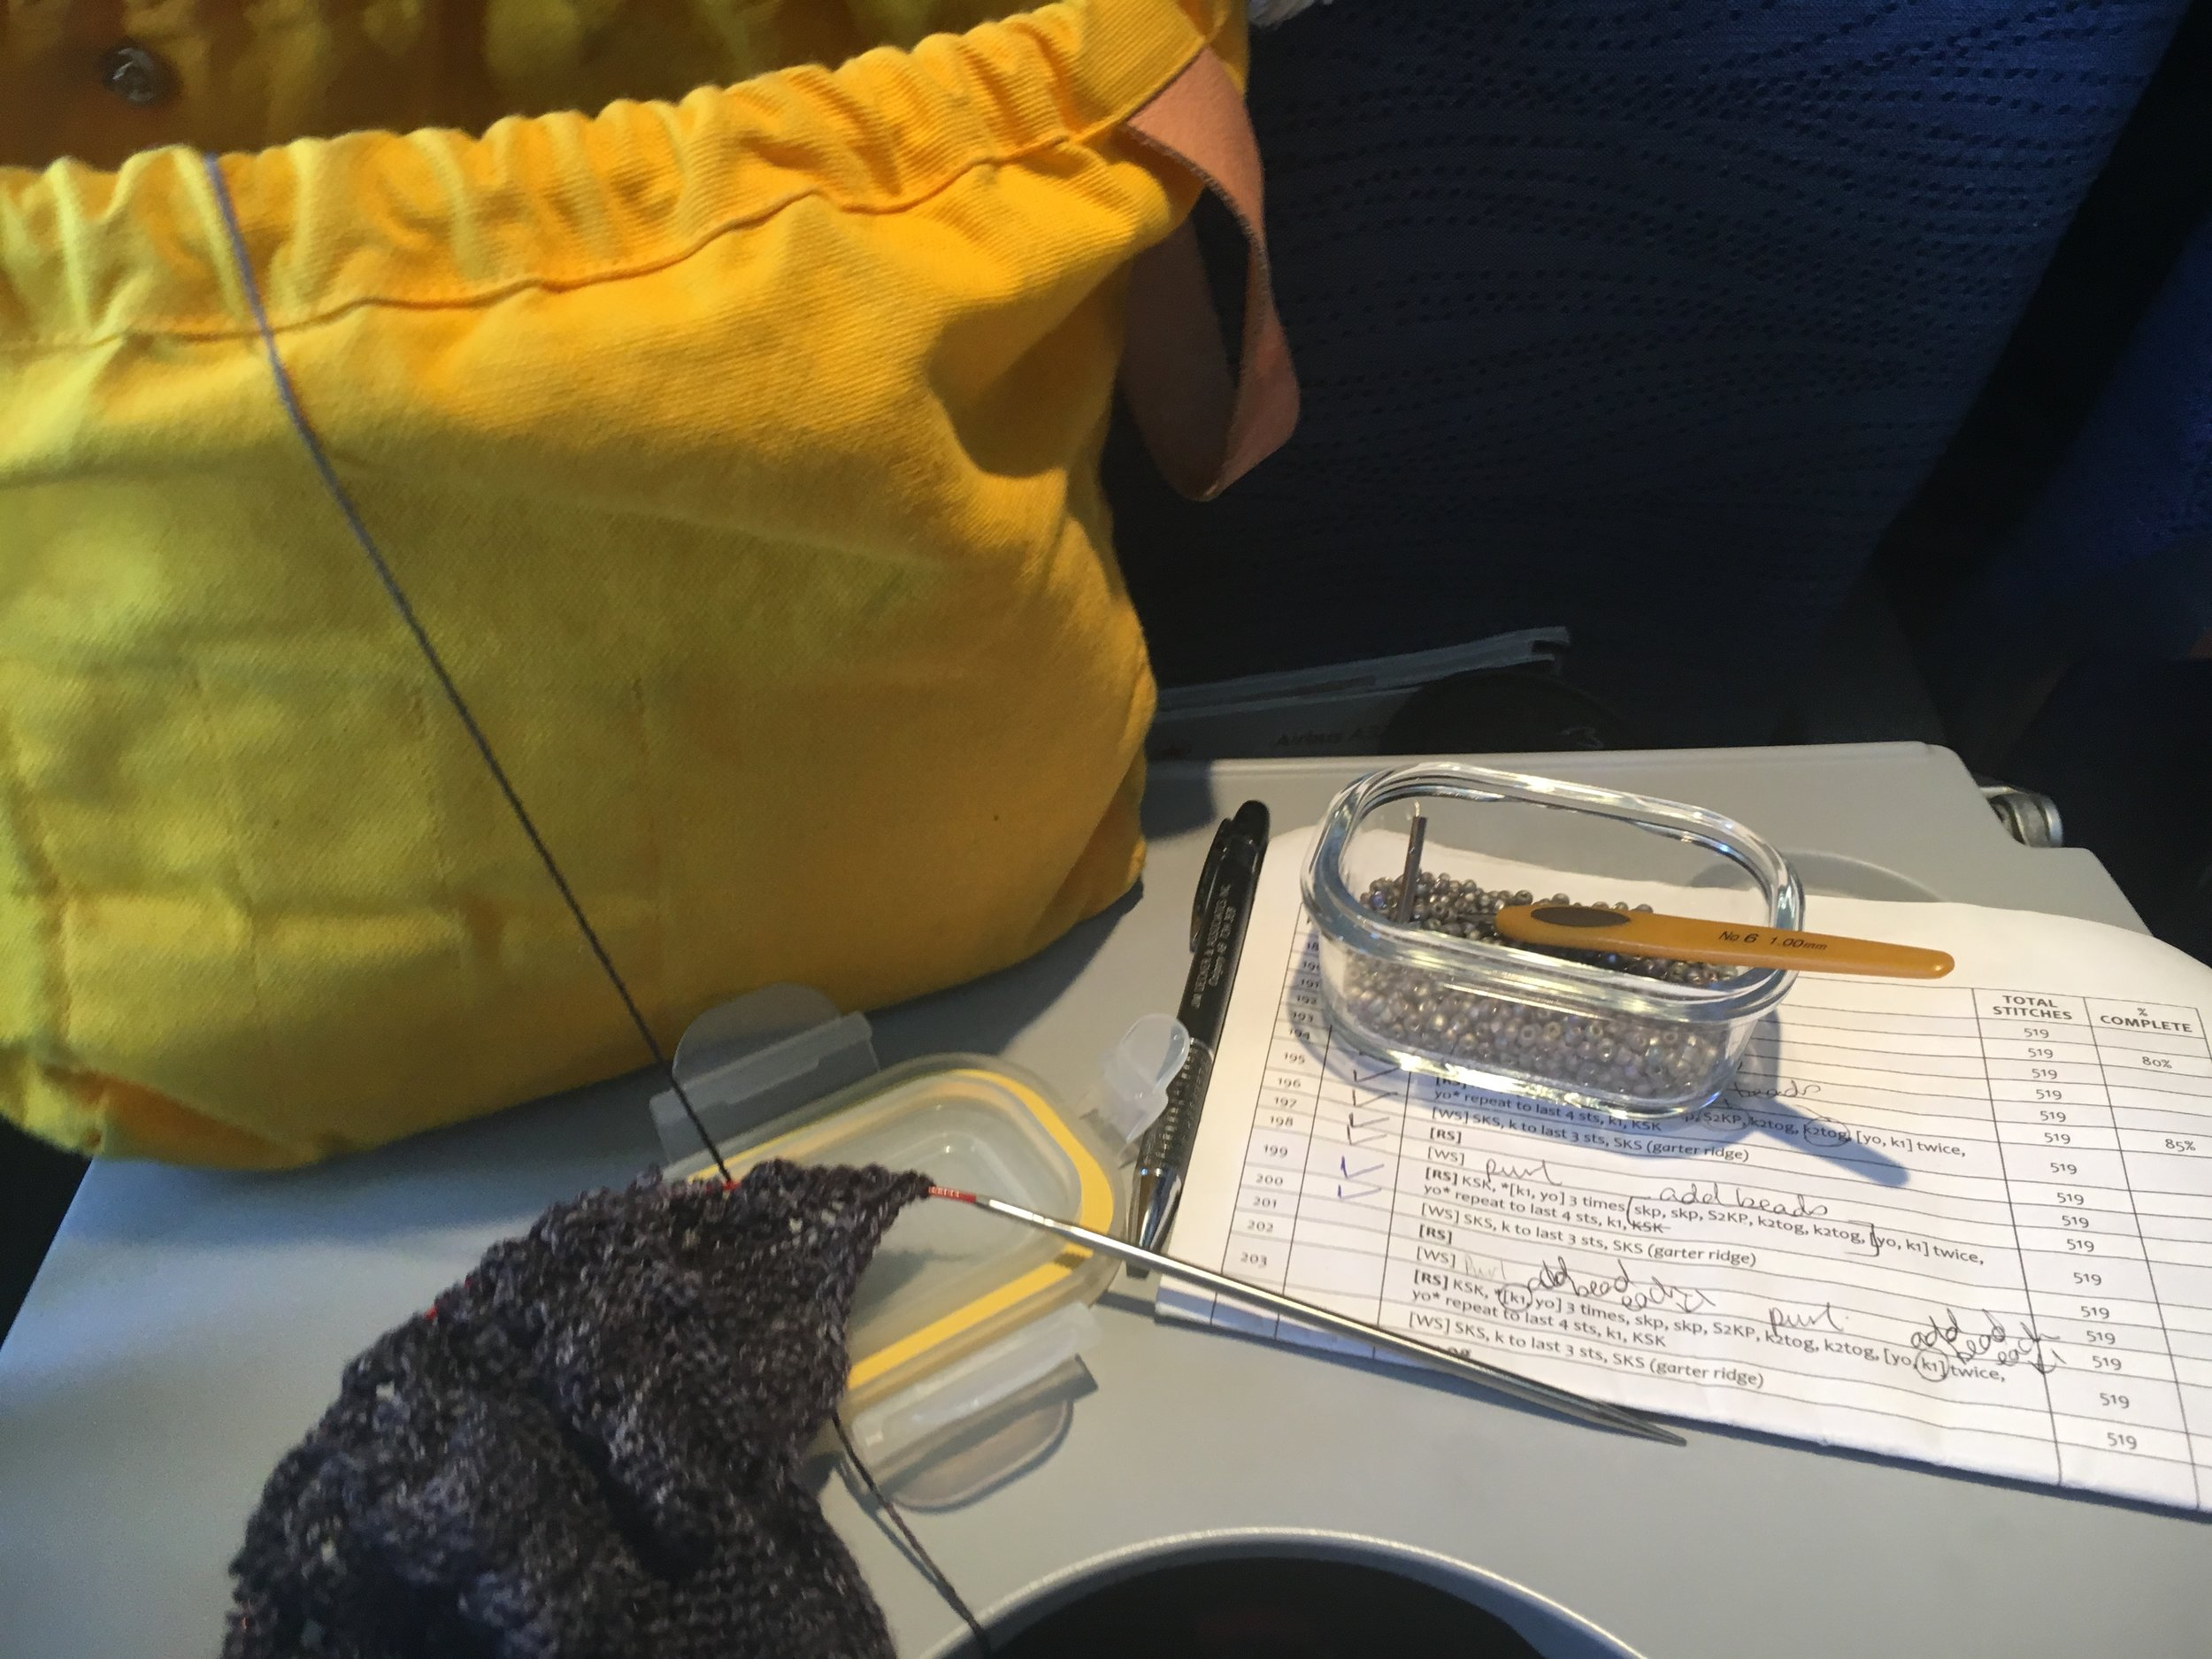 Bead knitting on a plane!